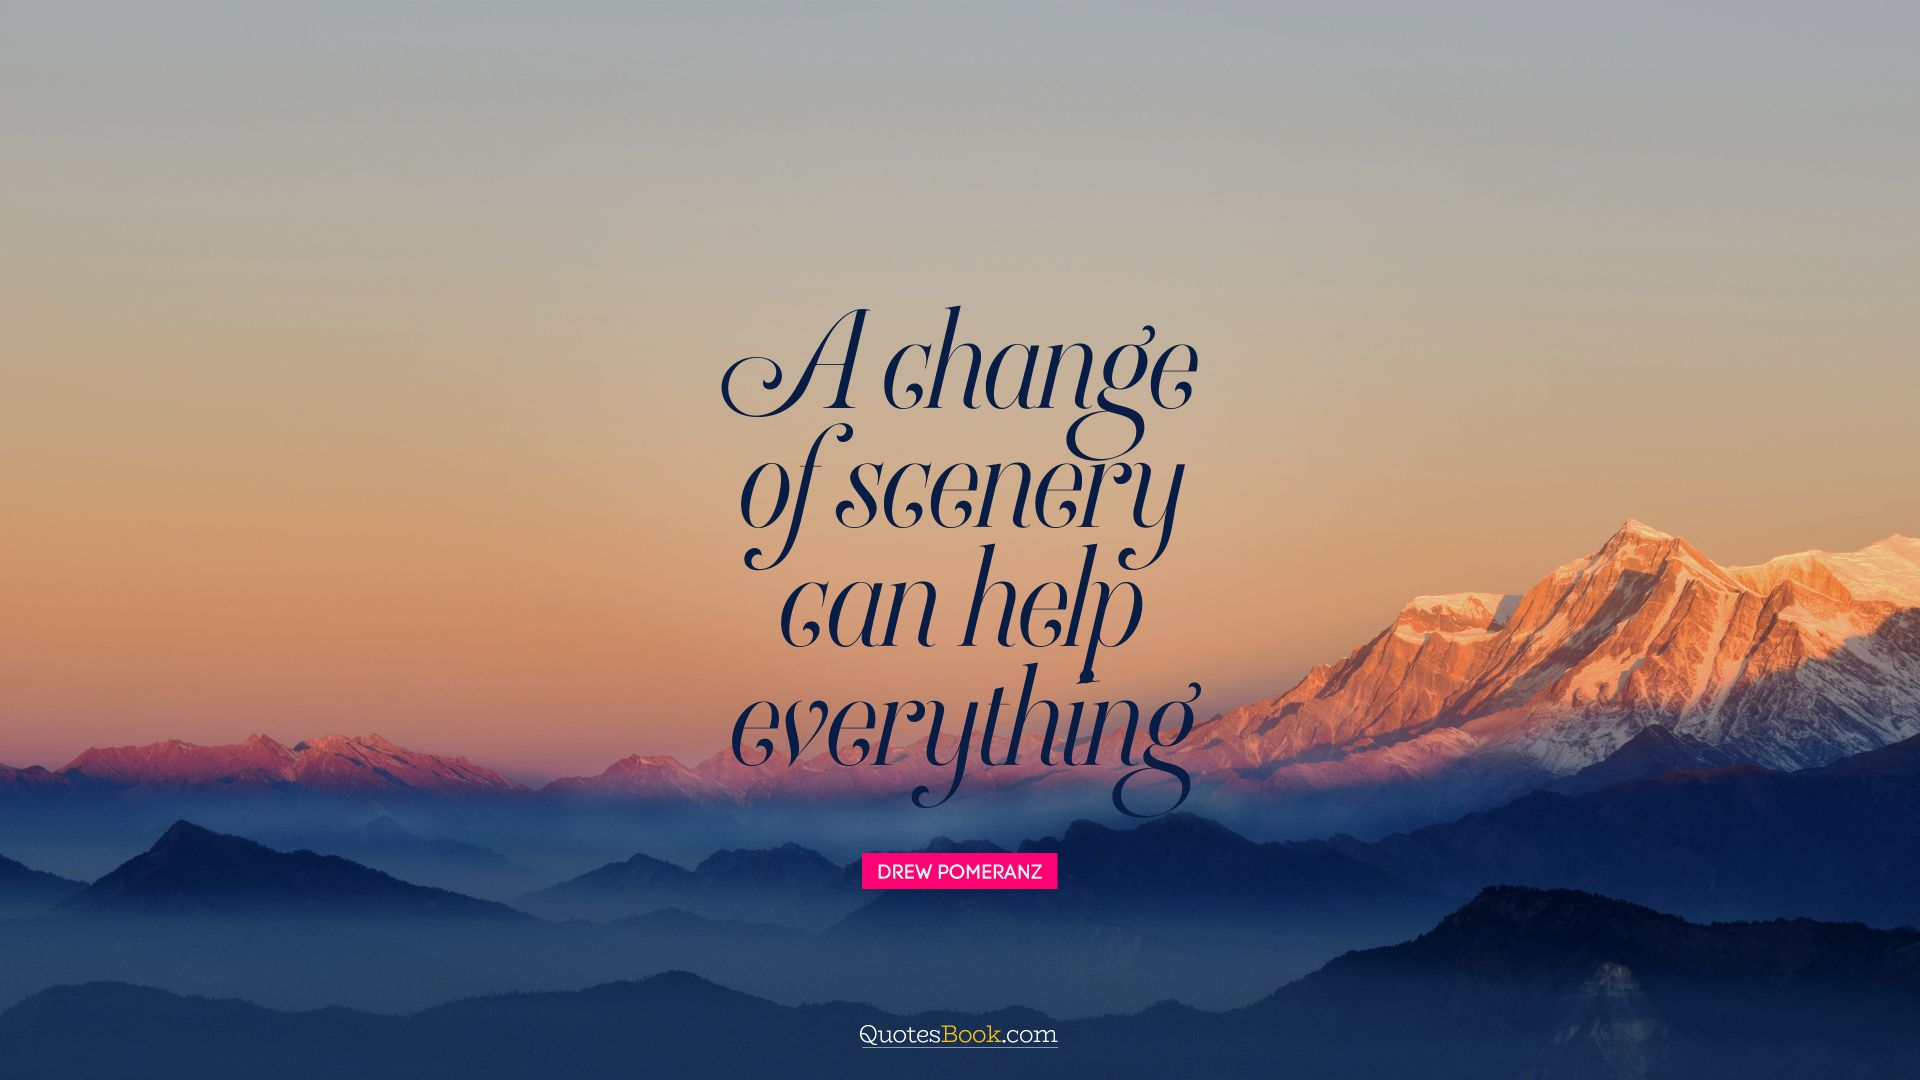 A change of scenery can help everything. - Quote by Drew Pomeranz